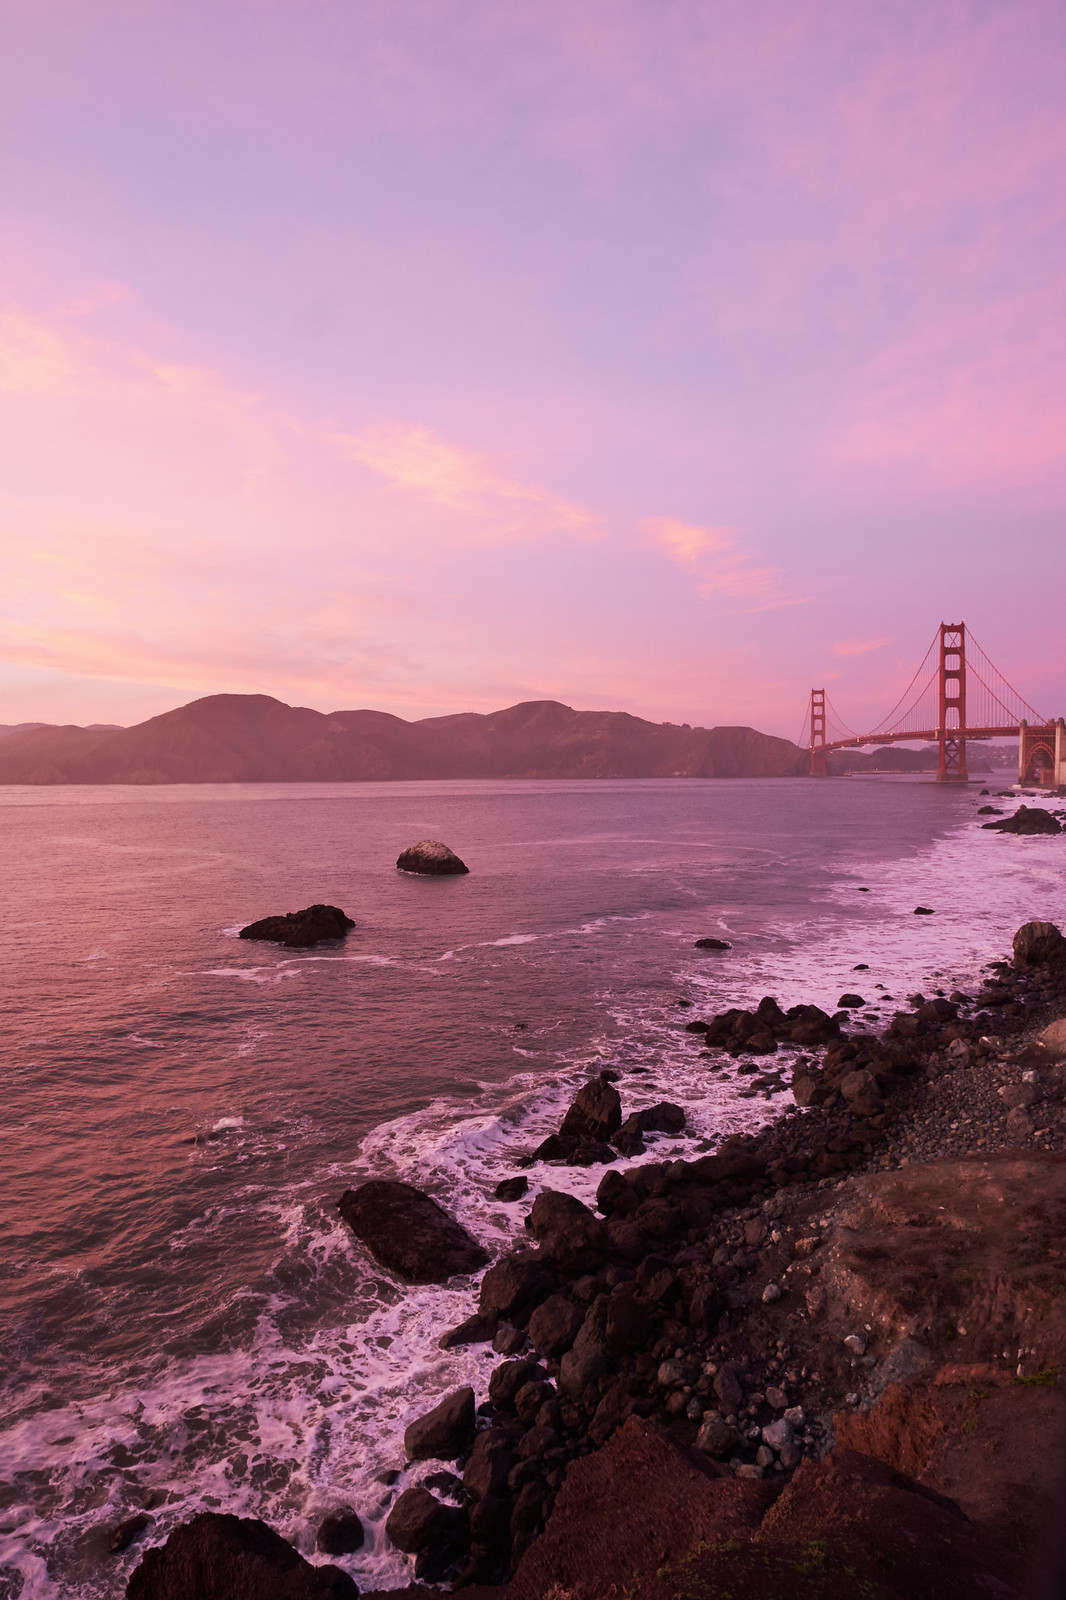 The golden-gate bridge at sunset with a golden-red sky.